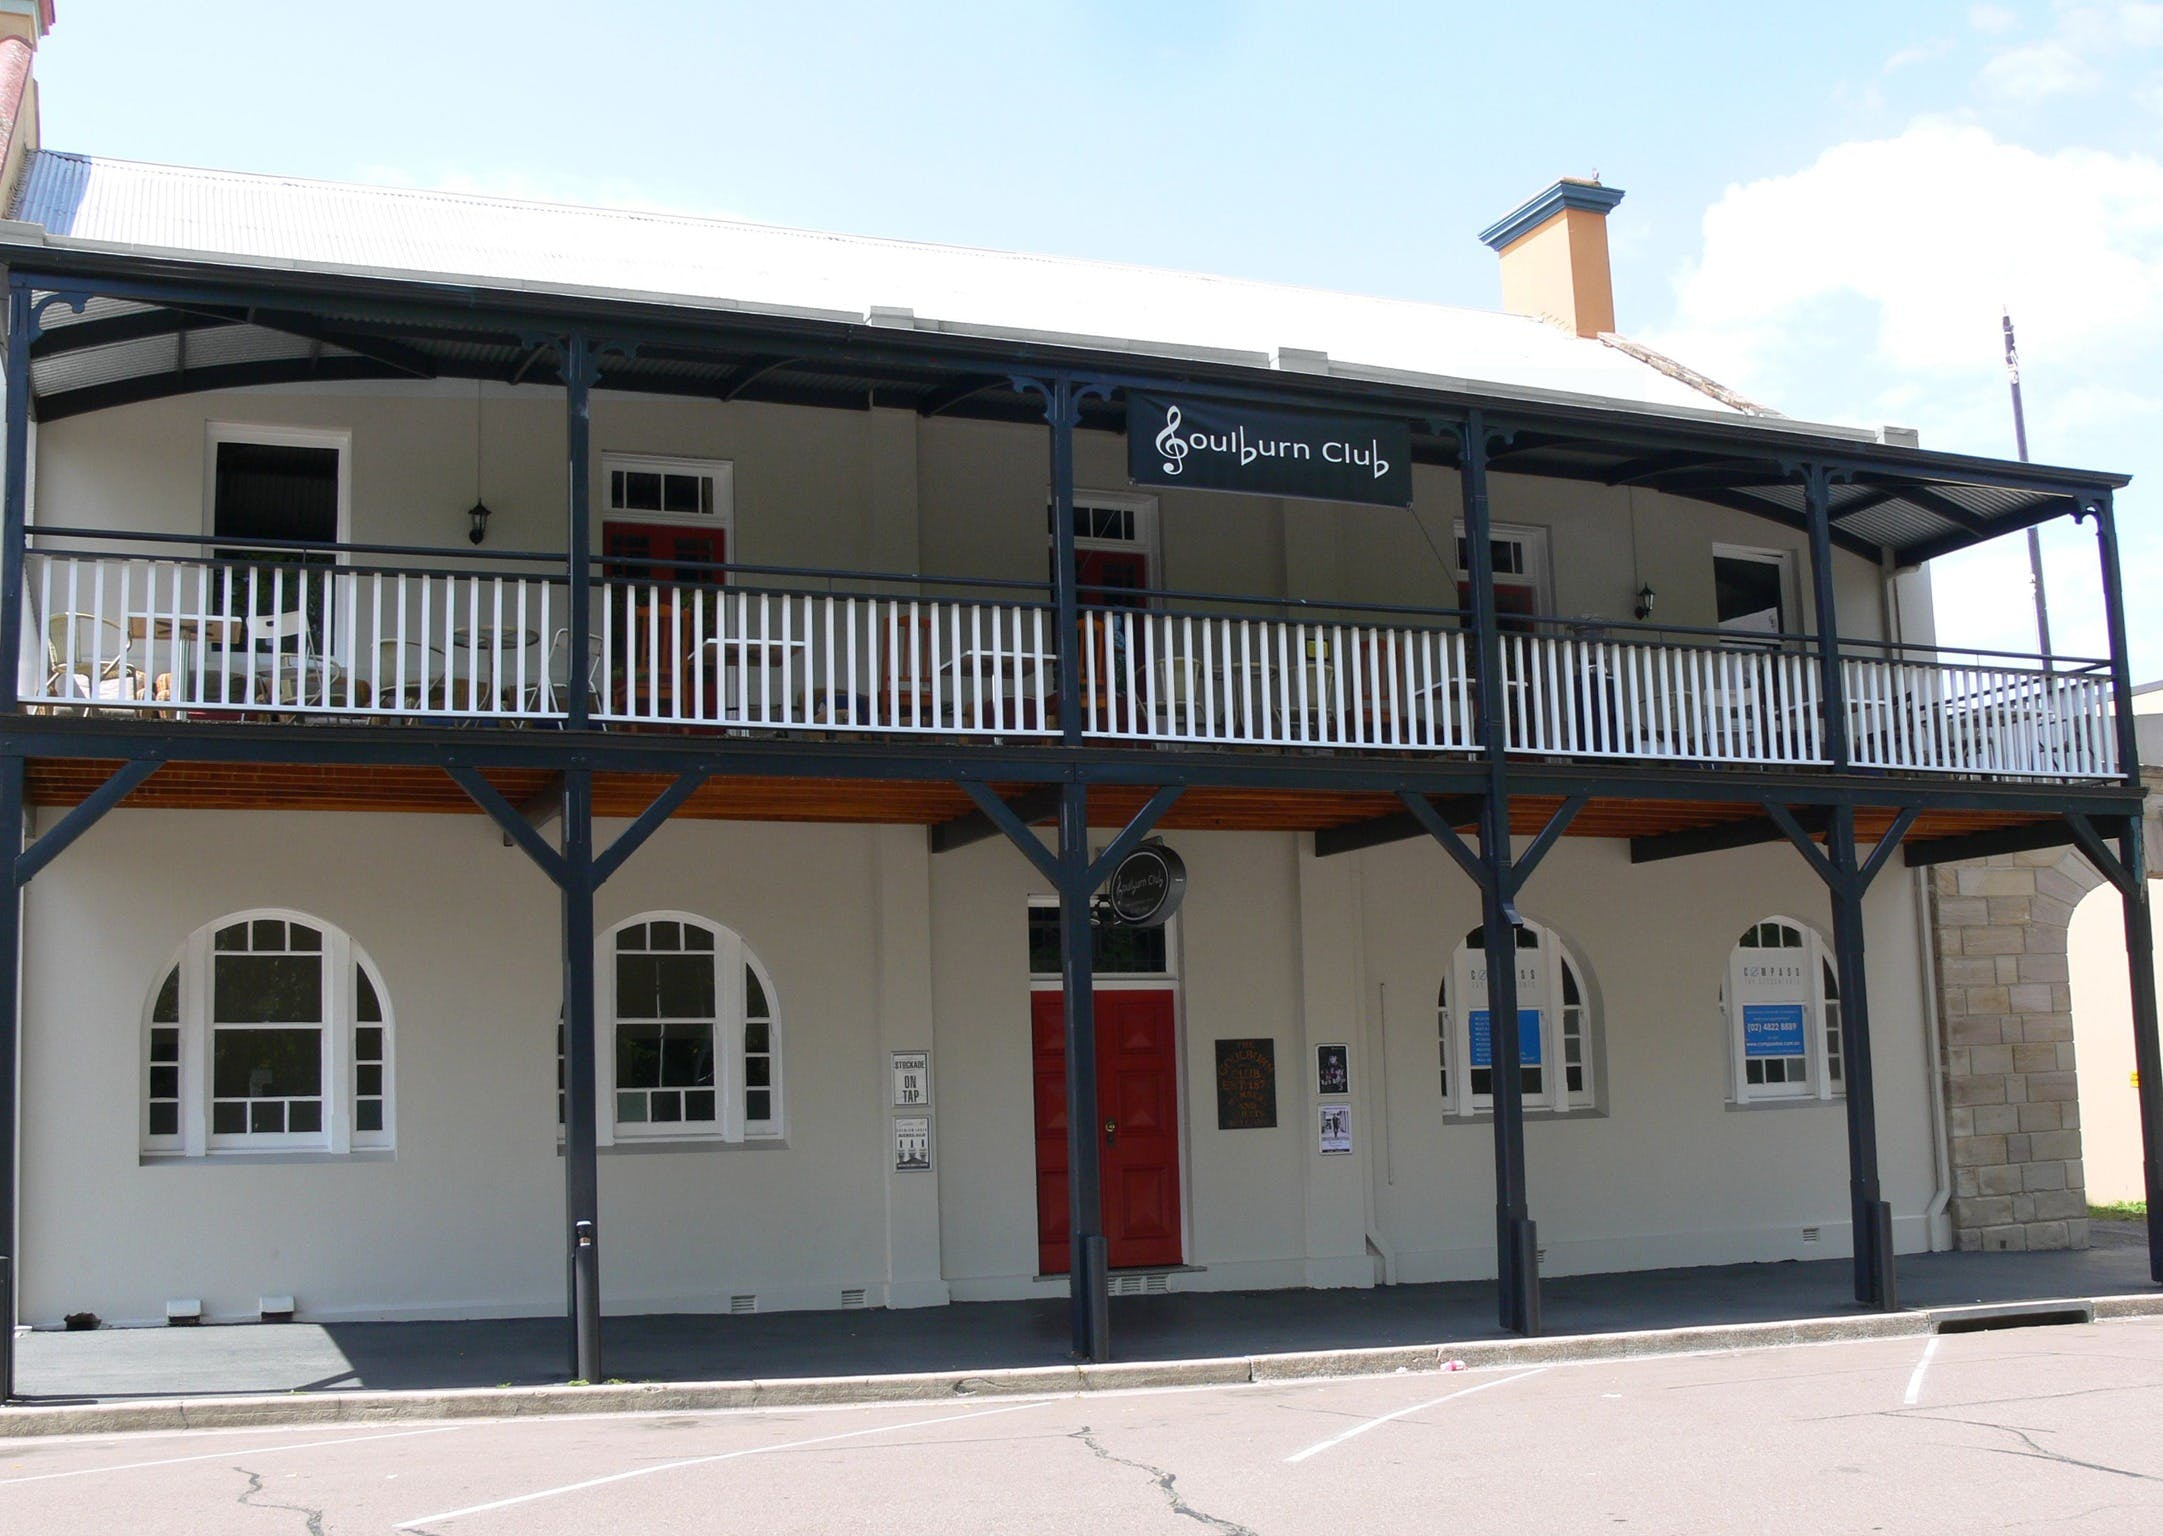 Open Mic Night at the Goulburn Club - Accommodation Sunshine Coast